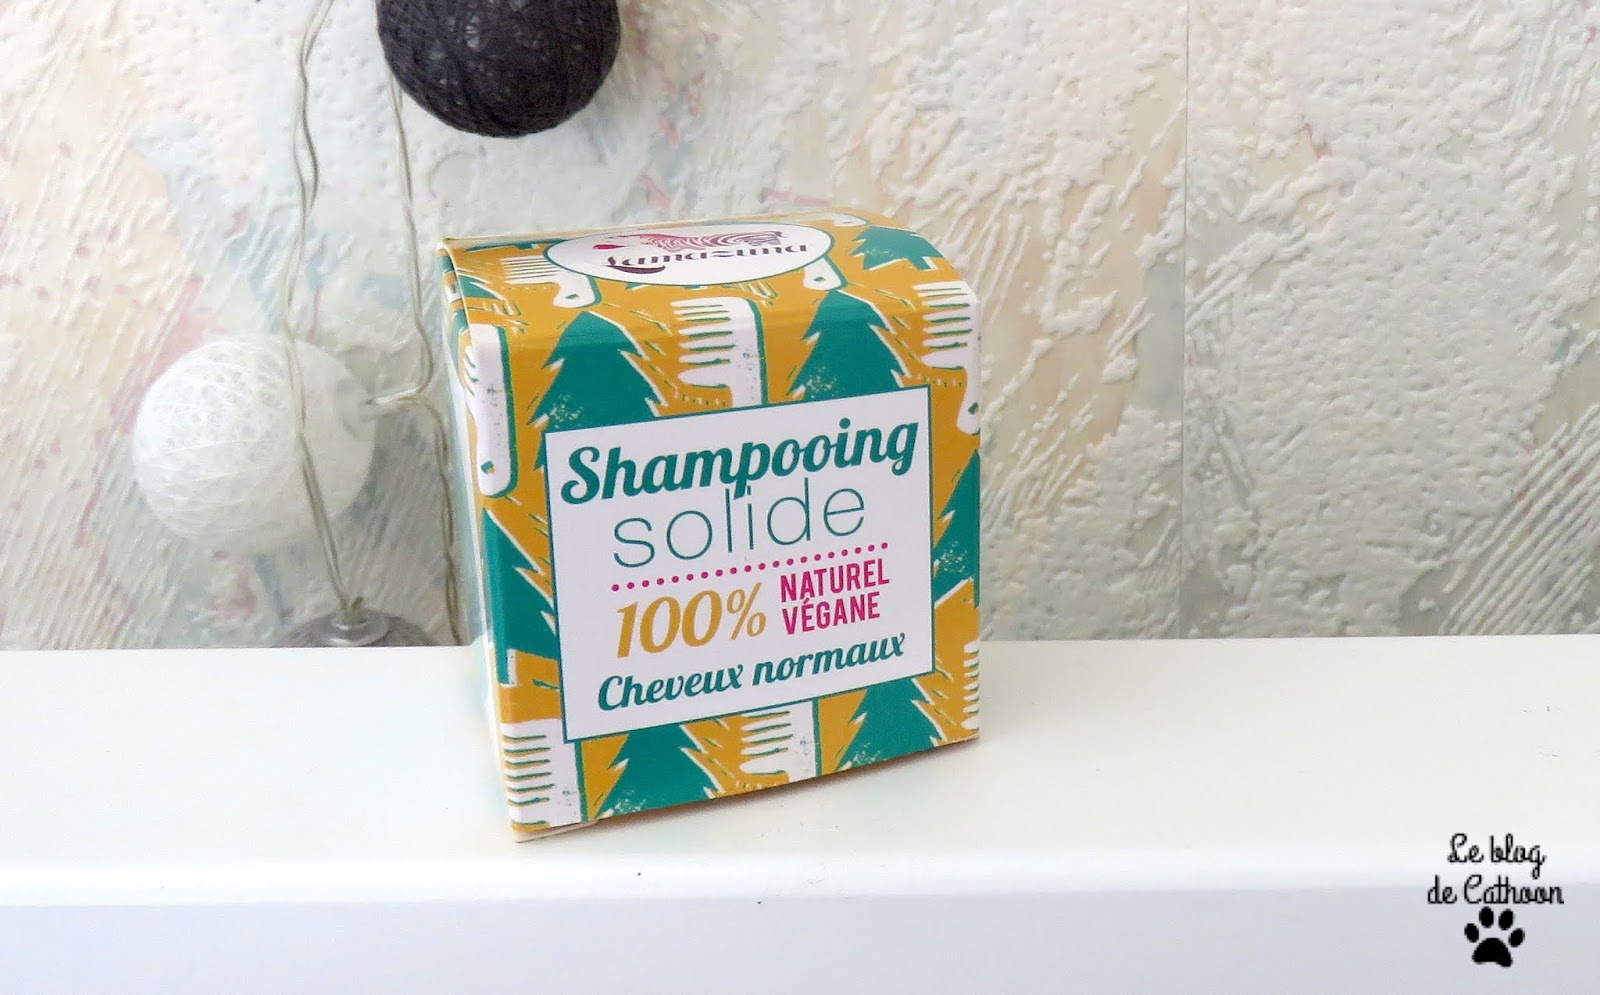 Shampoing solide pour cheveux normaux - Lamazuna